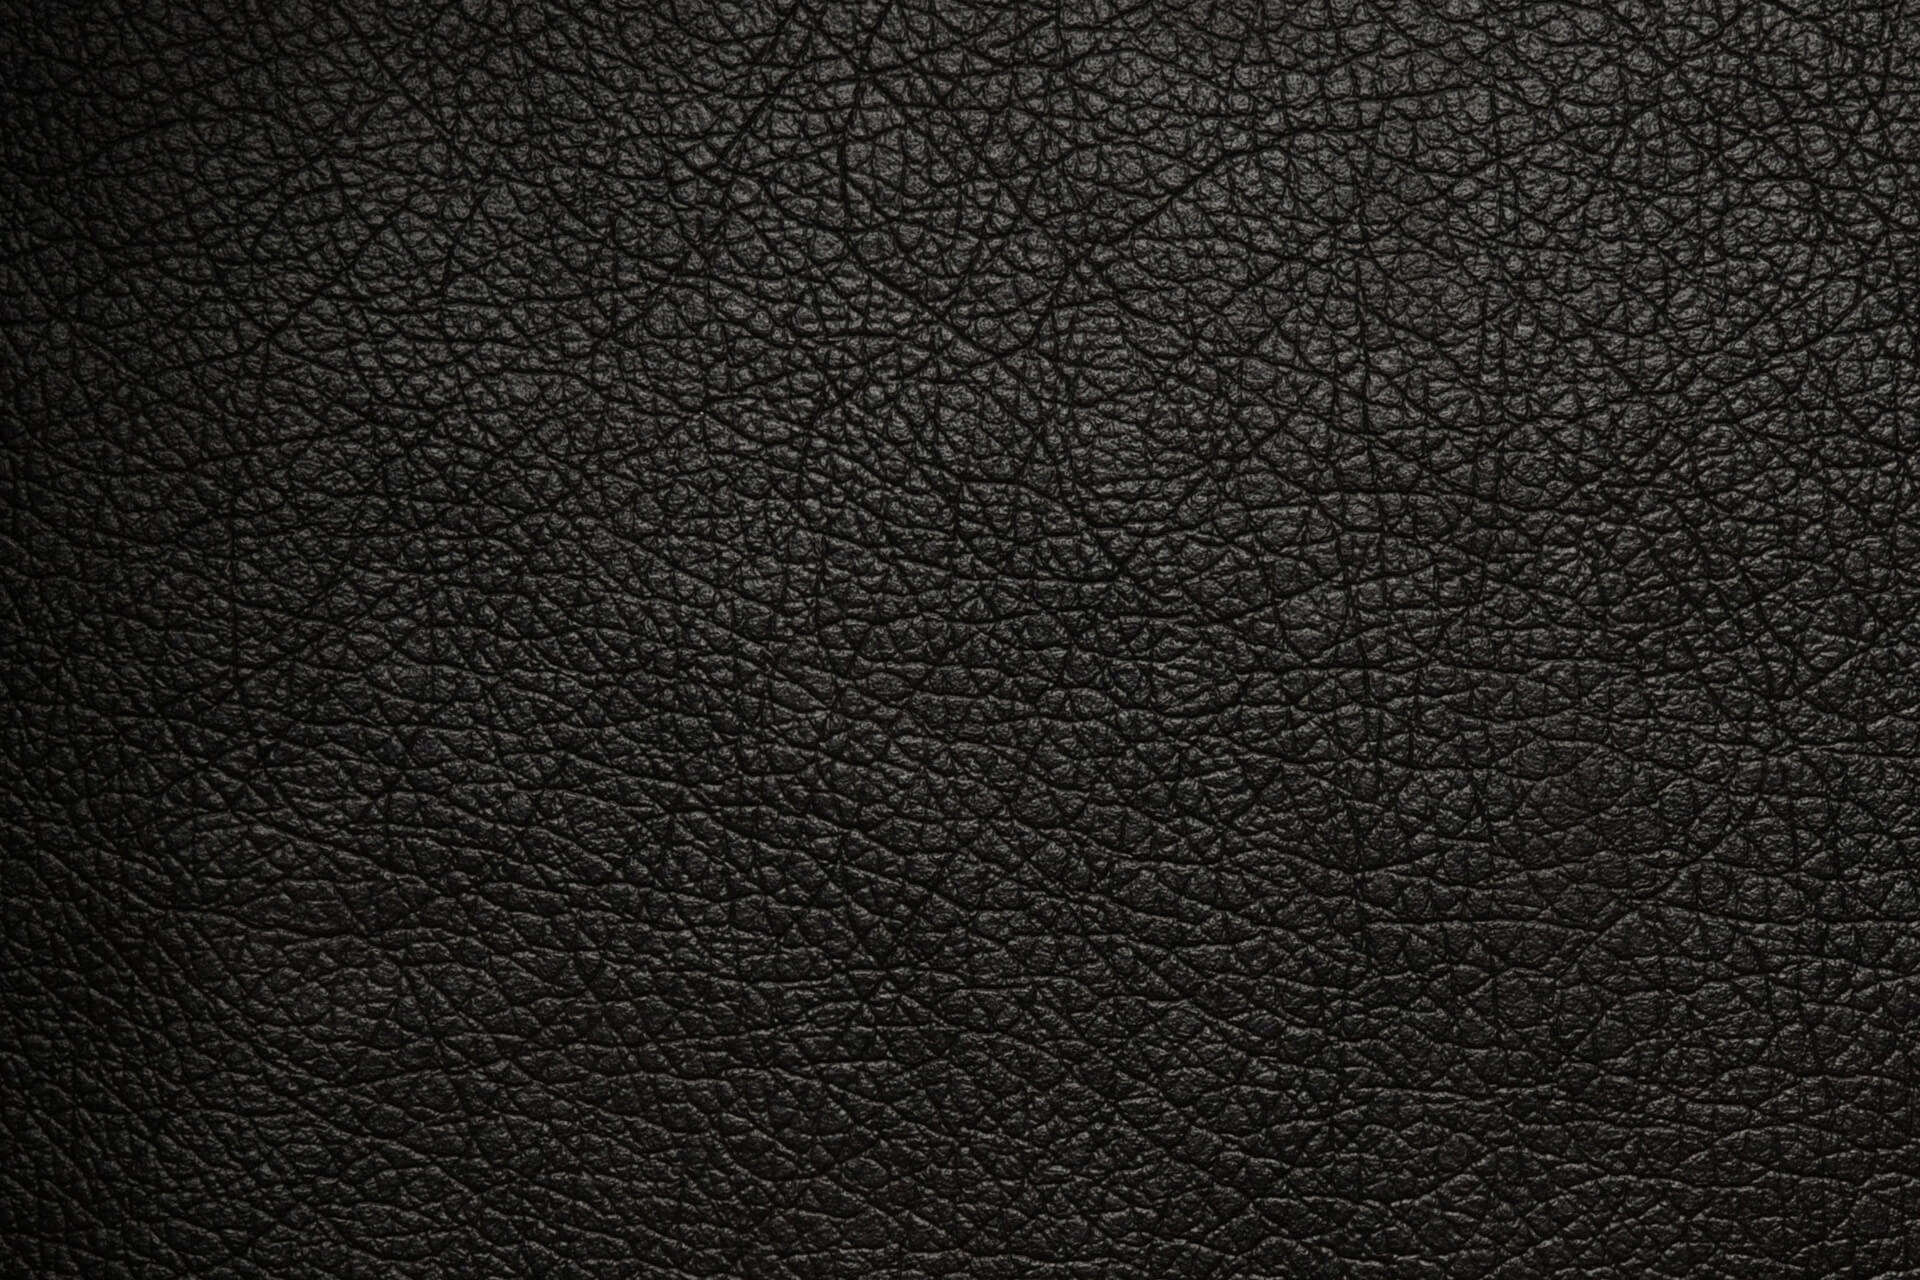 G Leather - Black